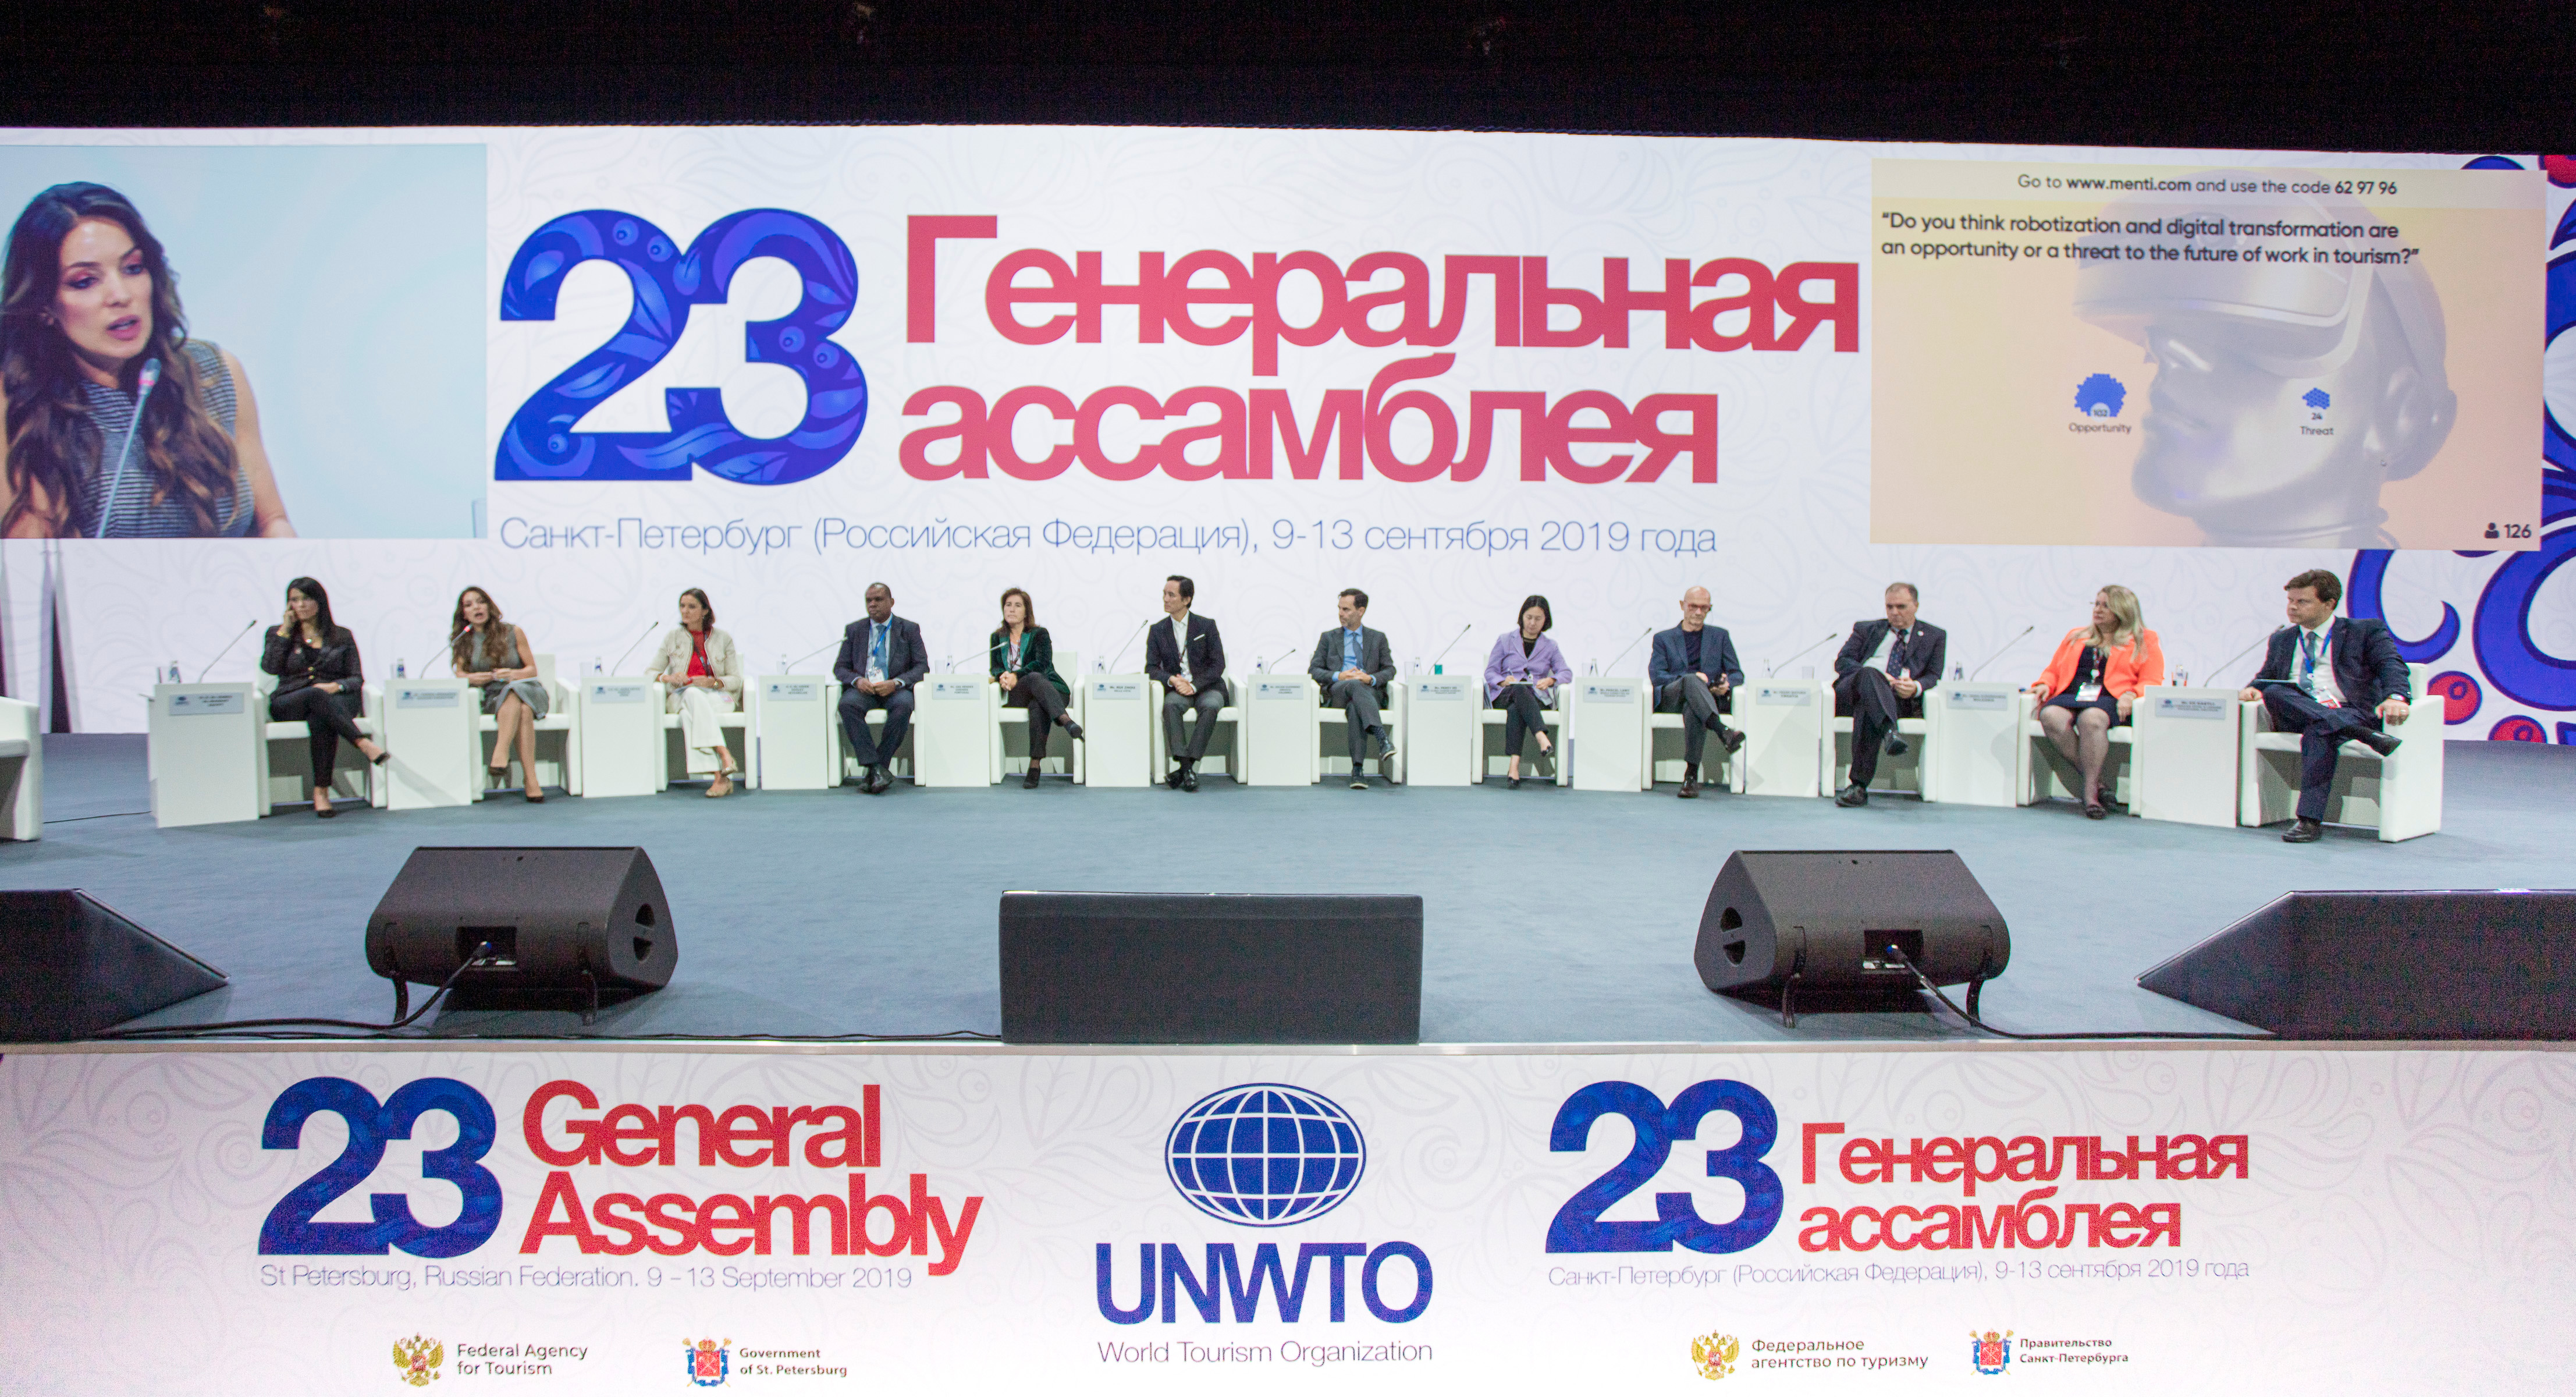 Tourism has 'Life-Changing Potential' - World Tourism Organization General Assembly